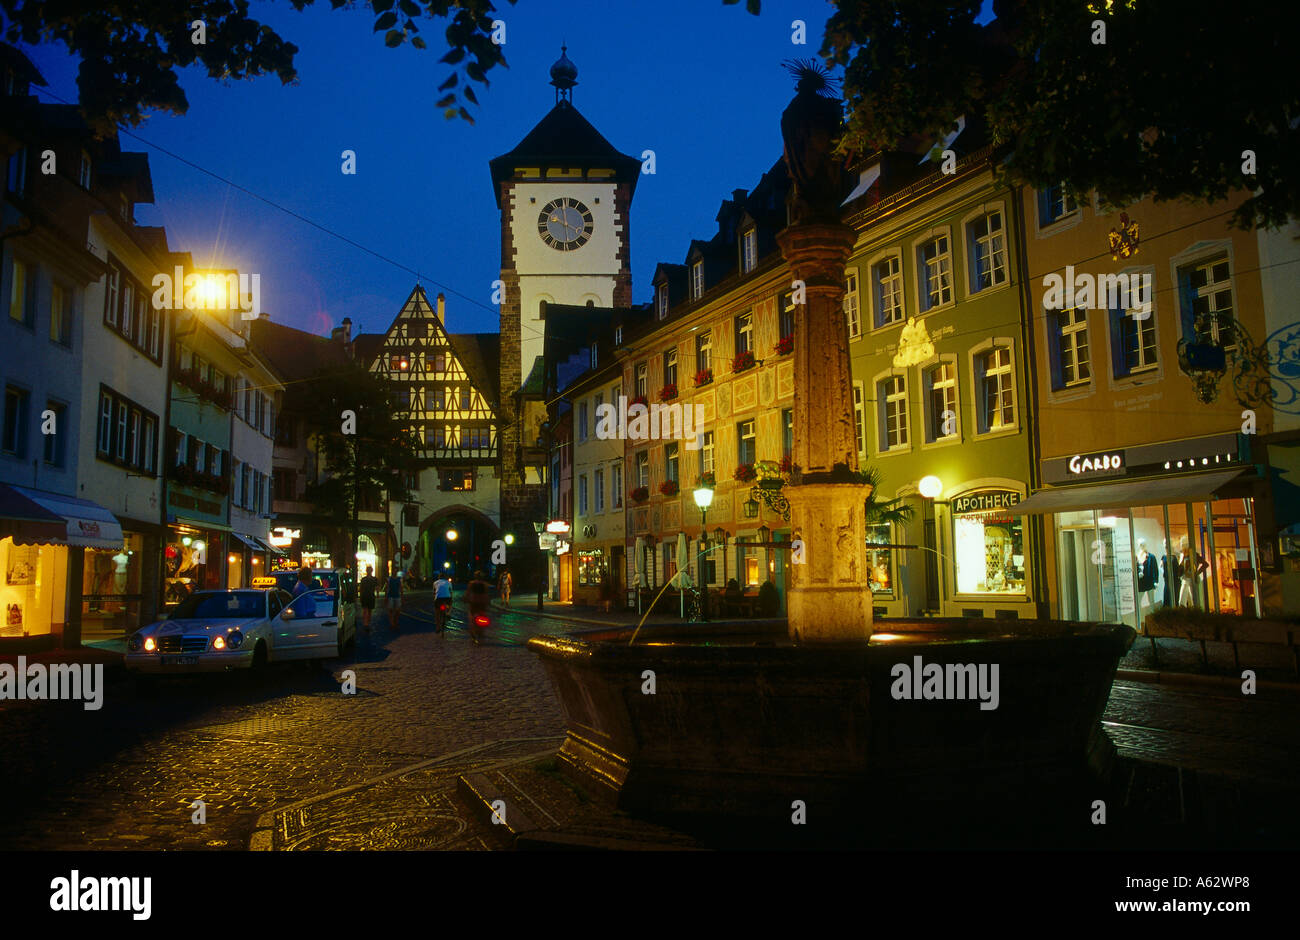 buildings lit up at night freiburg im breisgau baden wuerttemberg stock photo royalty free. Black Bedroom Furniture Sets. Home Design Ideas